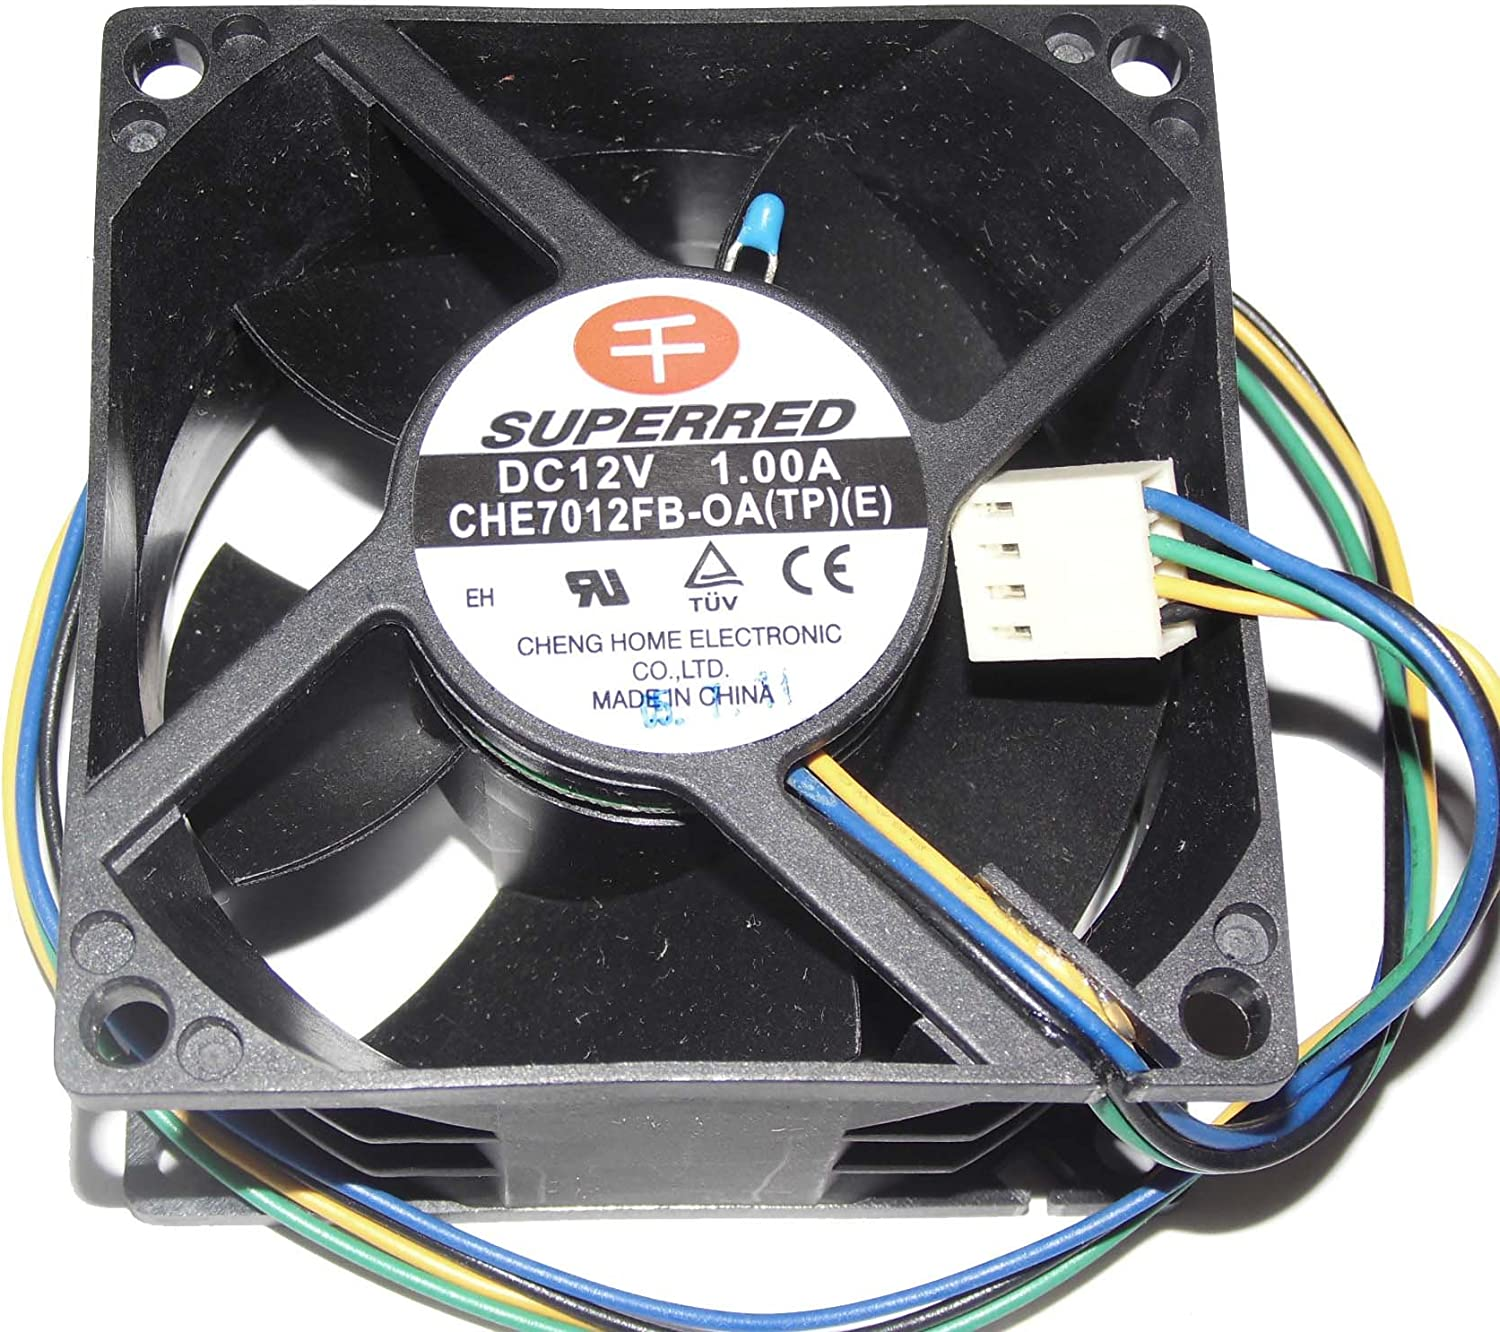 SUPERRED 7038 CHE7012FB-OA 12V 1.0A 4Wire Cooling Fan